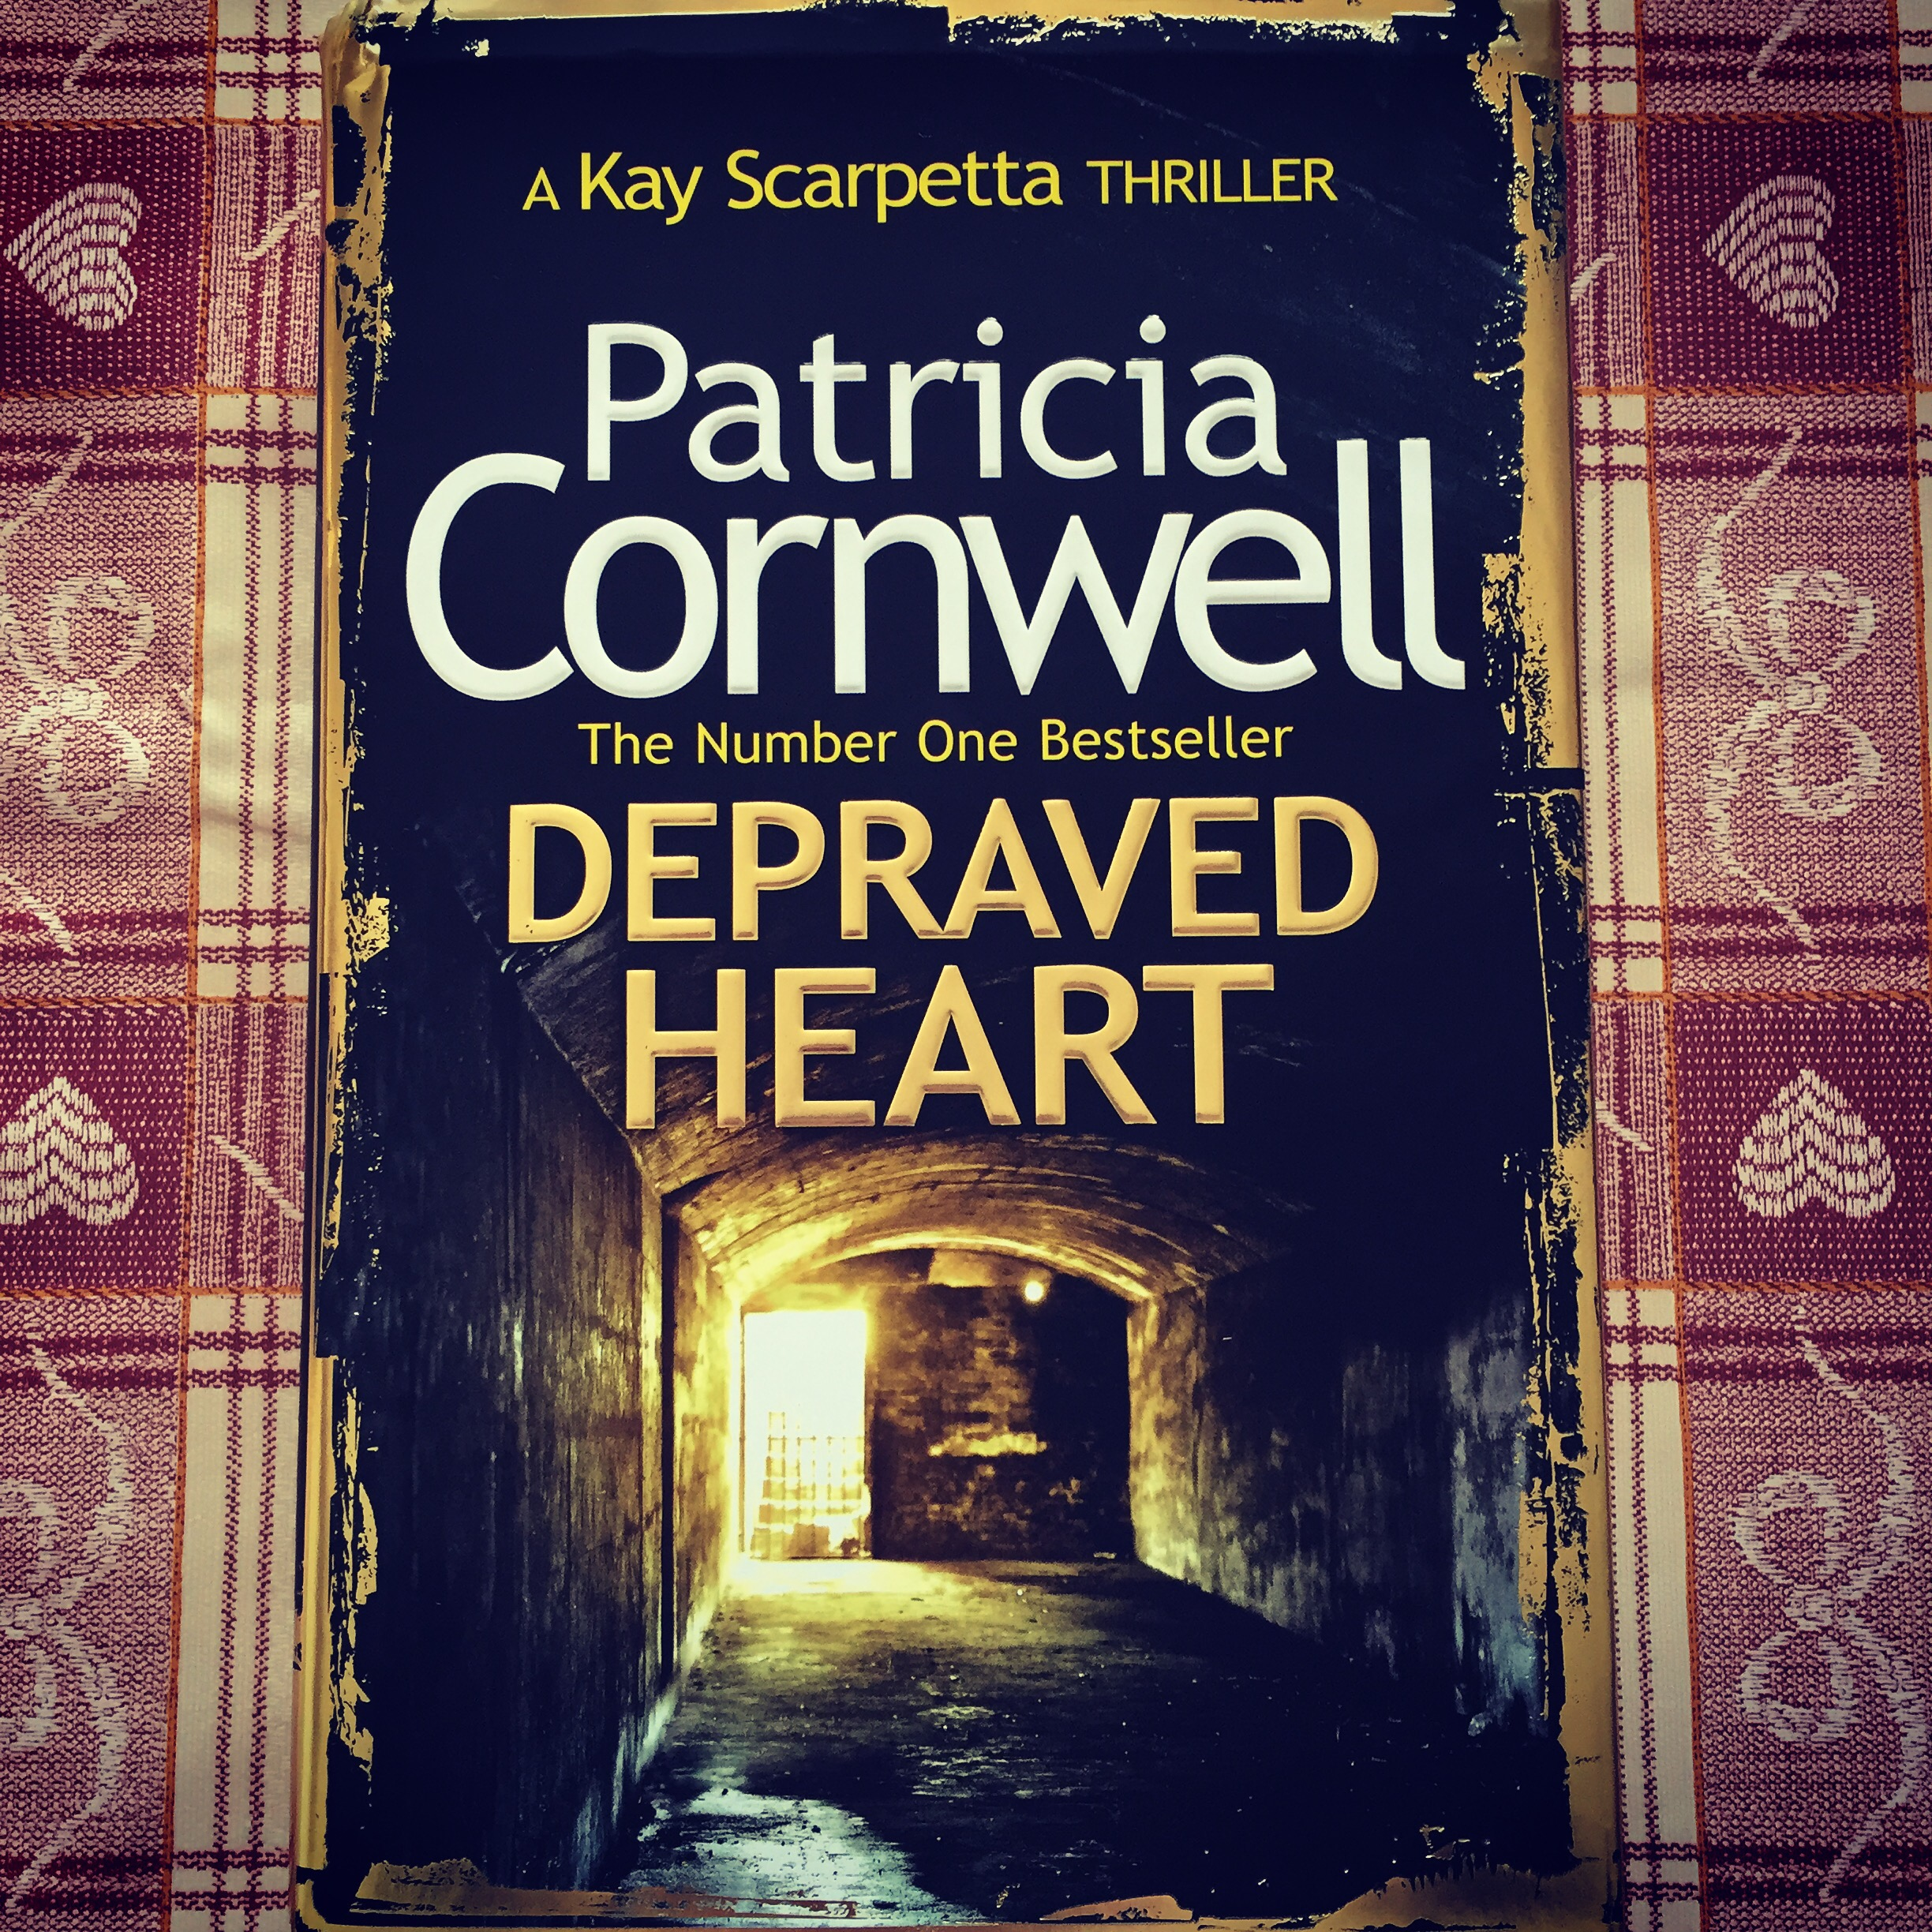 Depraved Heart by Patricia Cornwell ***BLOG TOUR